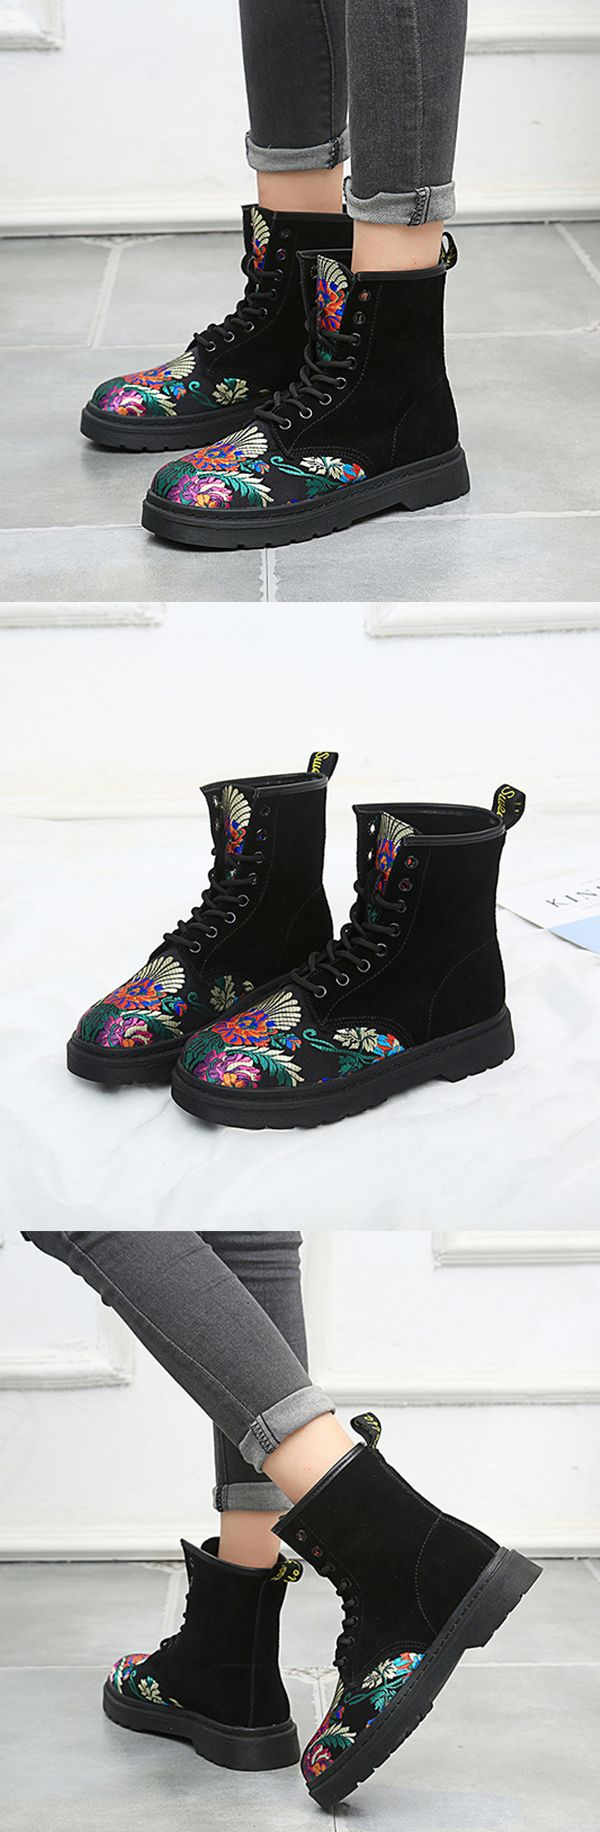 US$39.89  SOCOFY Retro Printing Pattern Ankle Flat Leather Boots